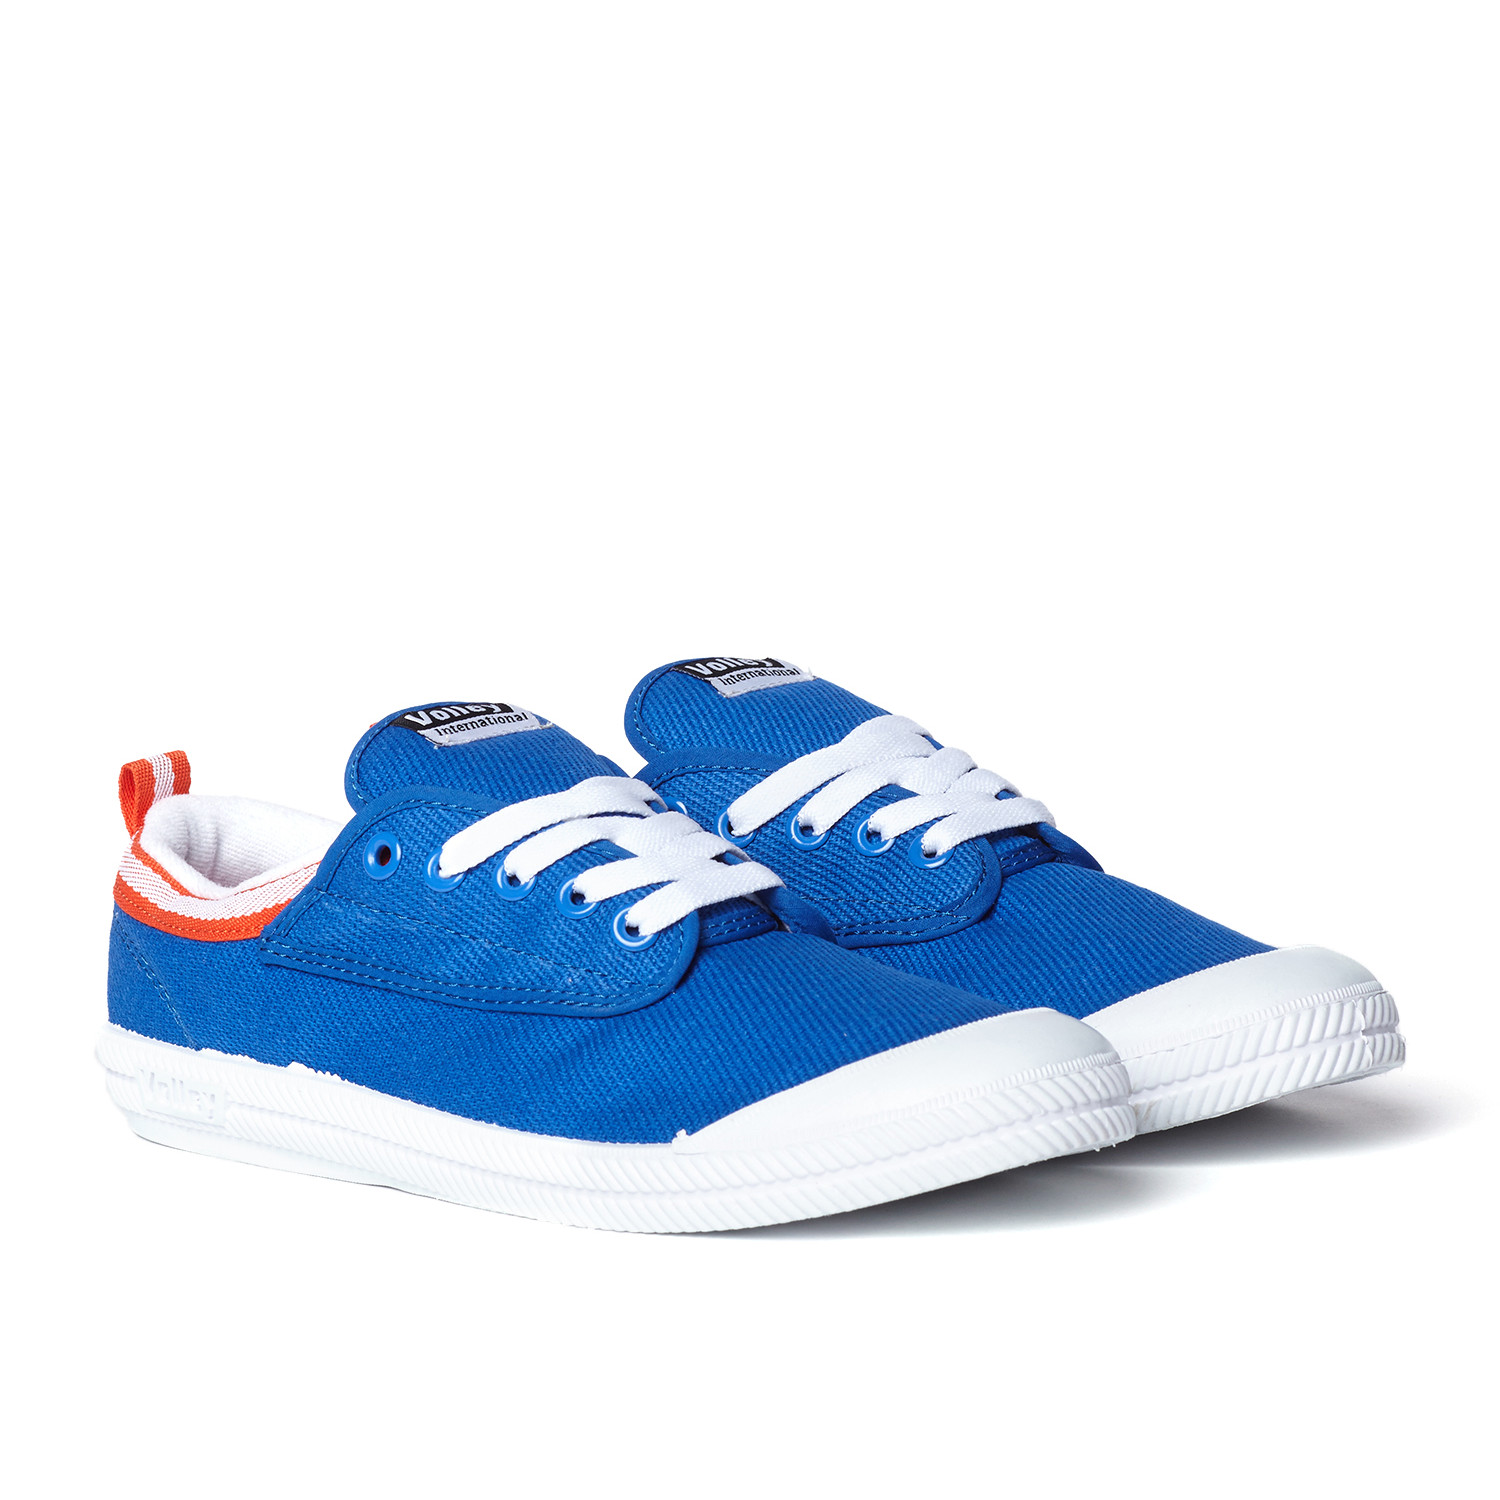 International Canvas Low Top Sneaker Blue + Red + White